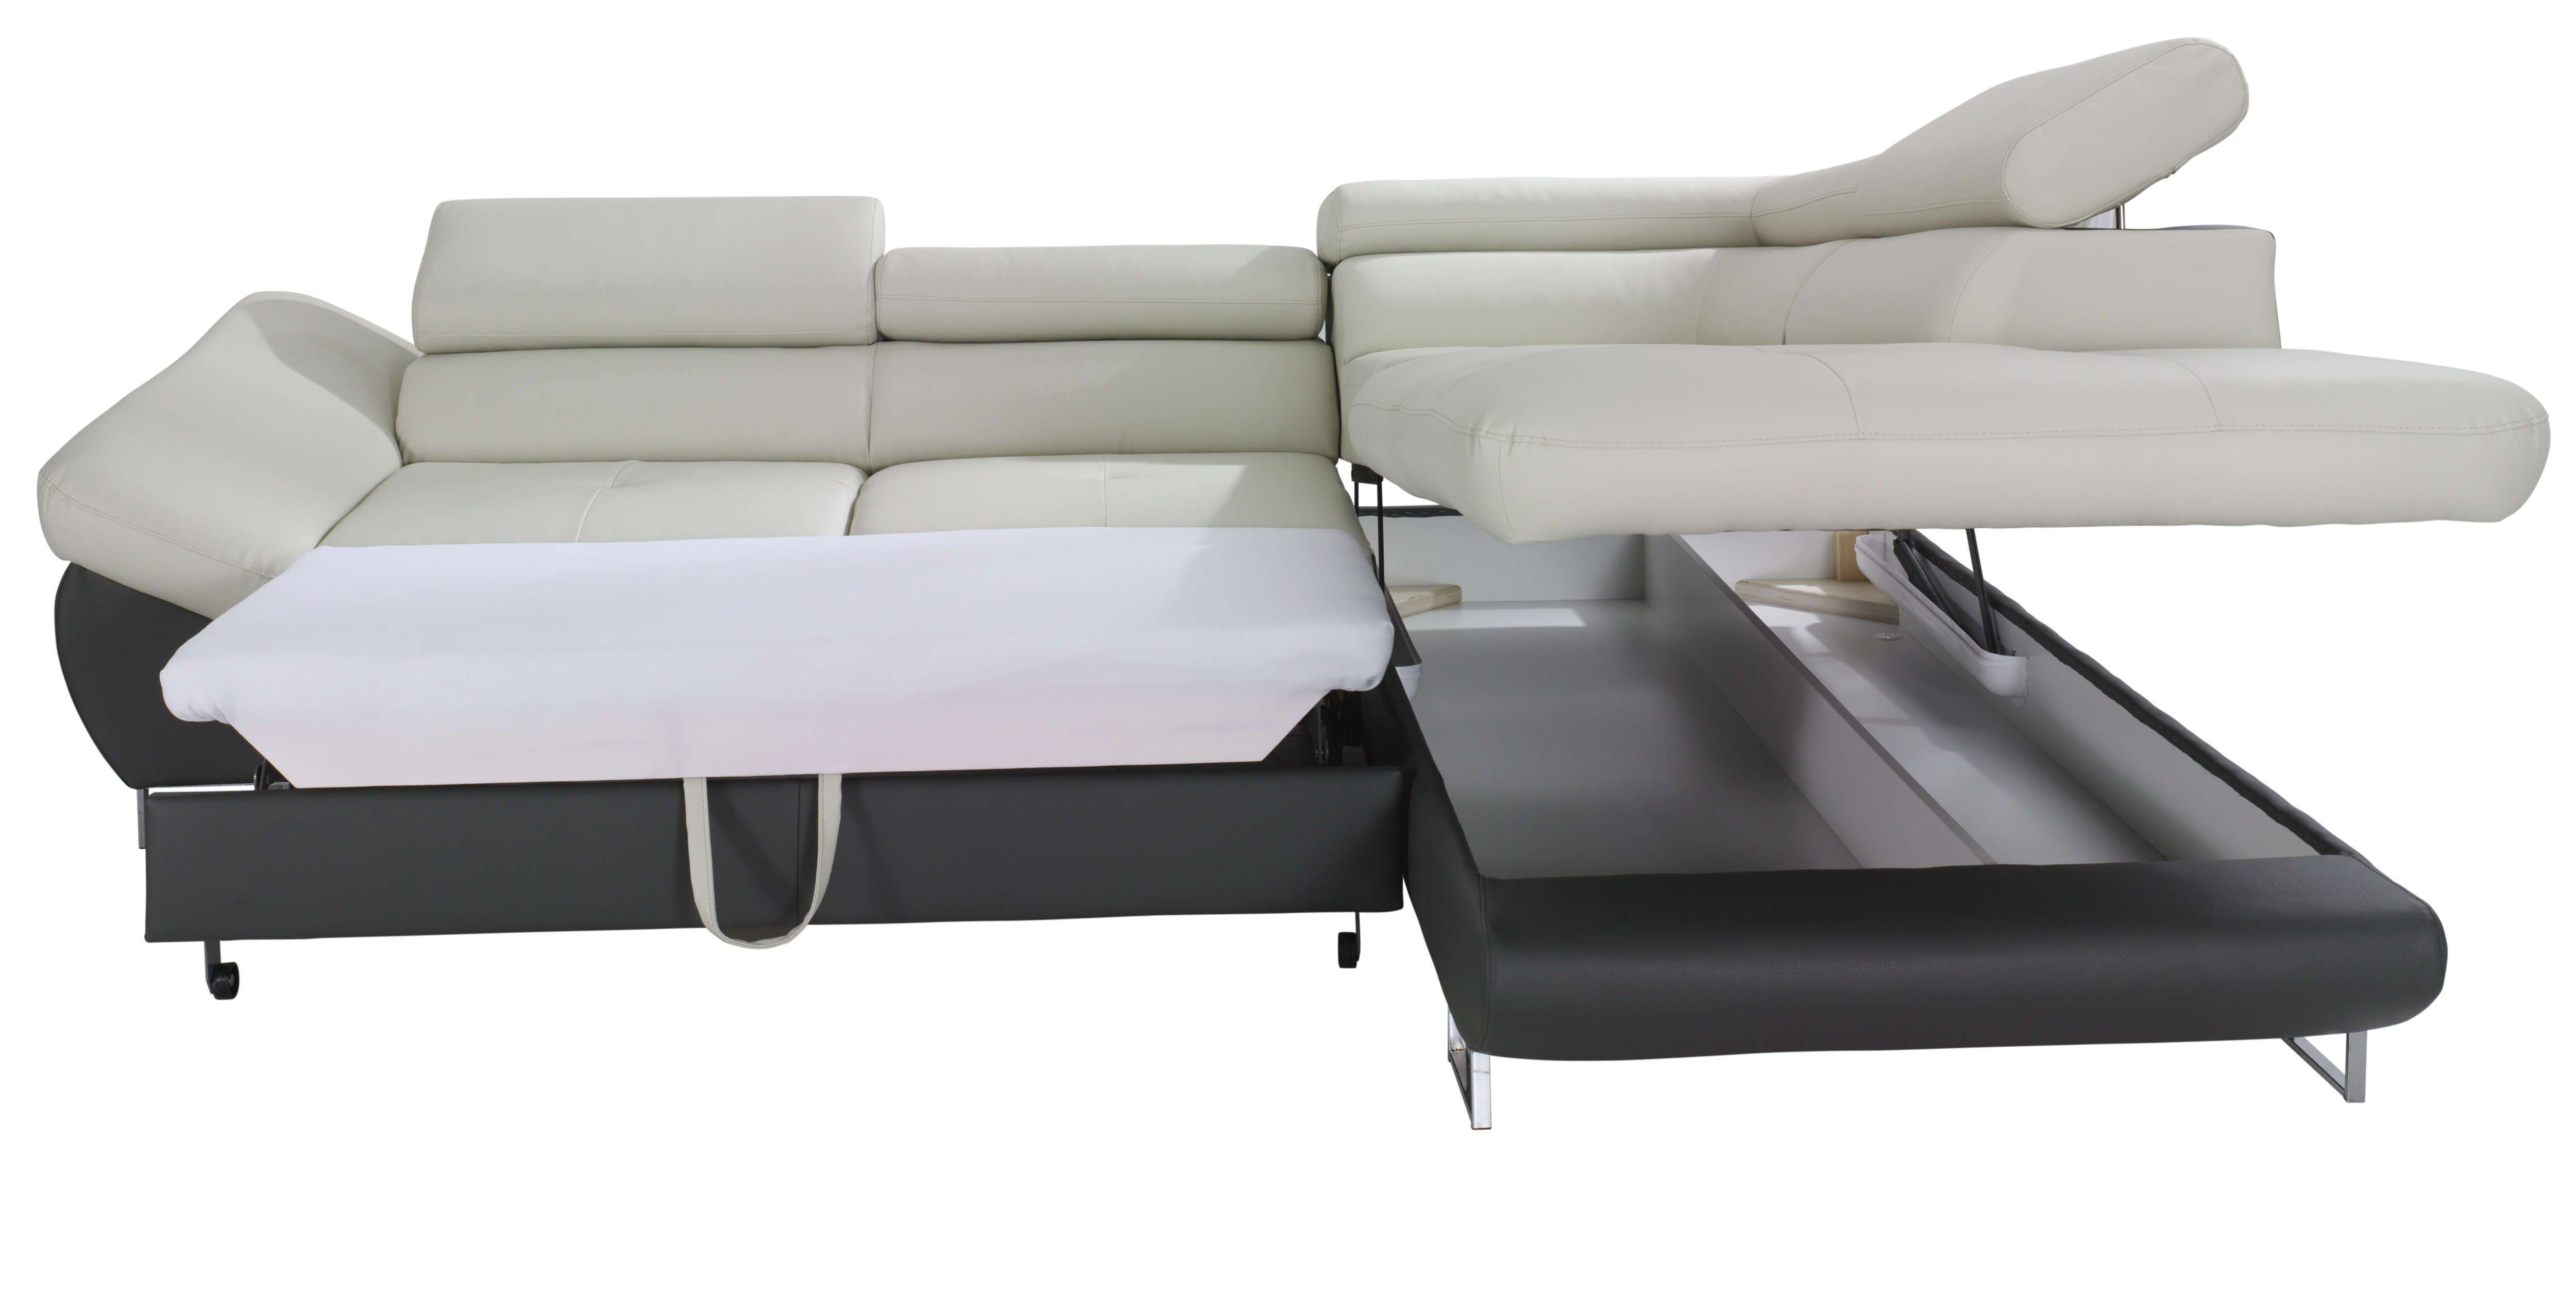 Best ideas about Sofa Sleeper Sectional . Save or Pin Fabio Sectional Sofa Sleeper with Storage Now.